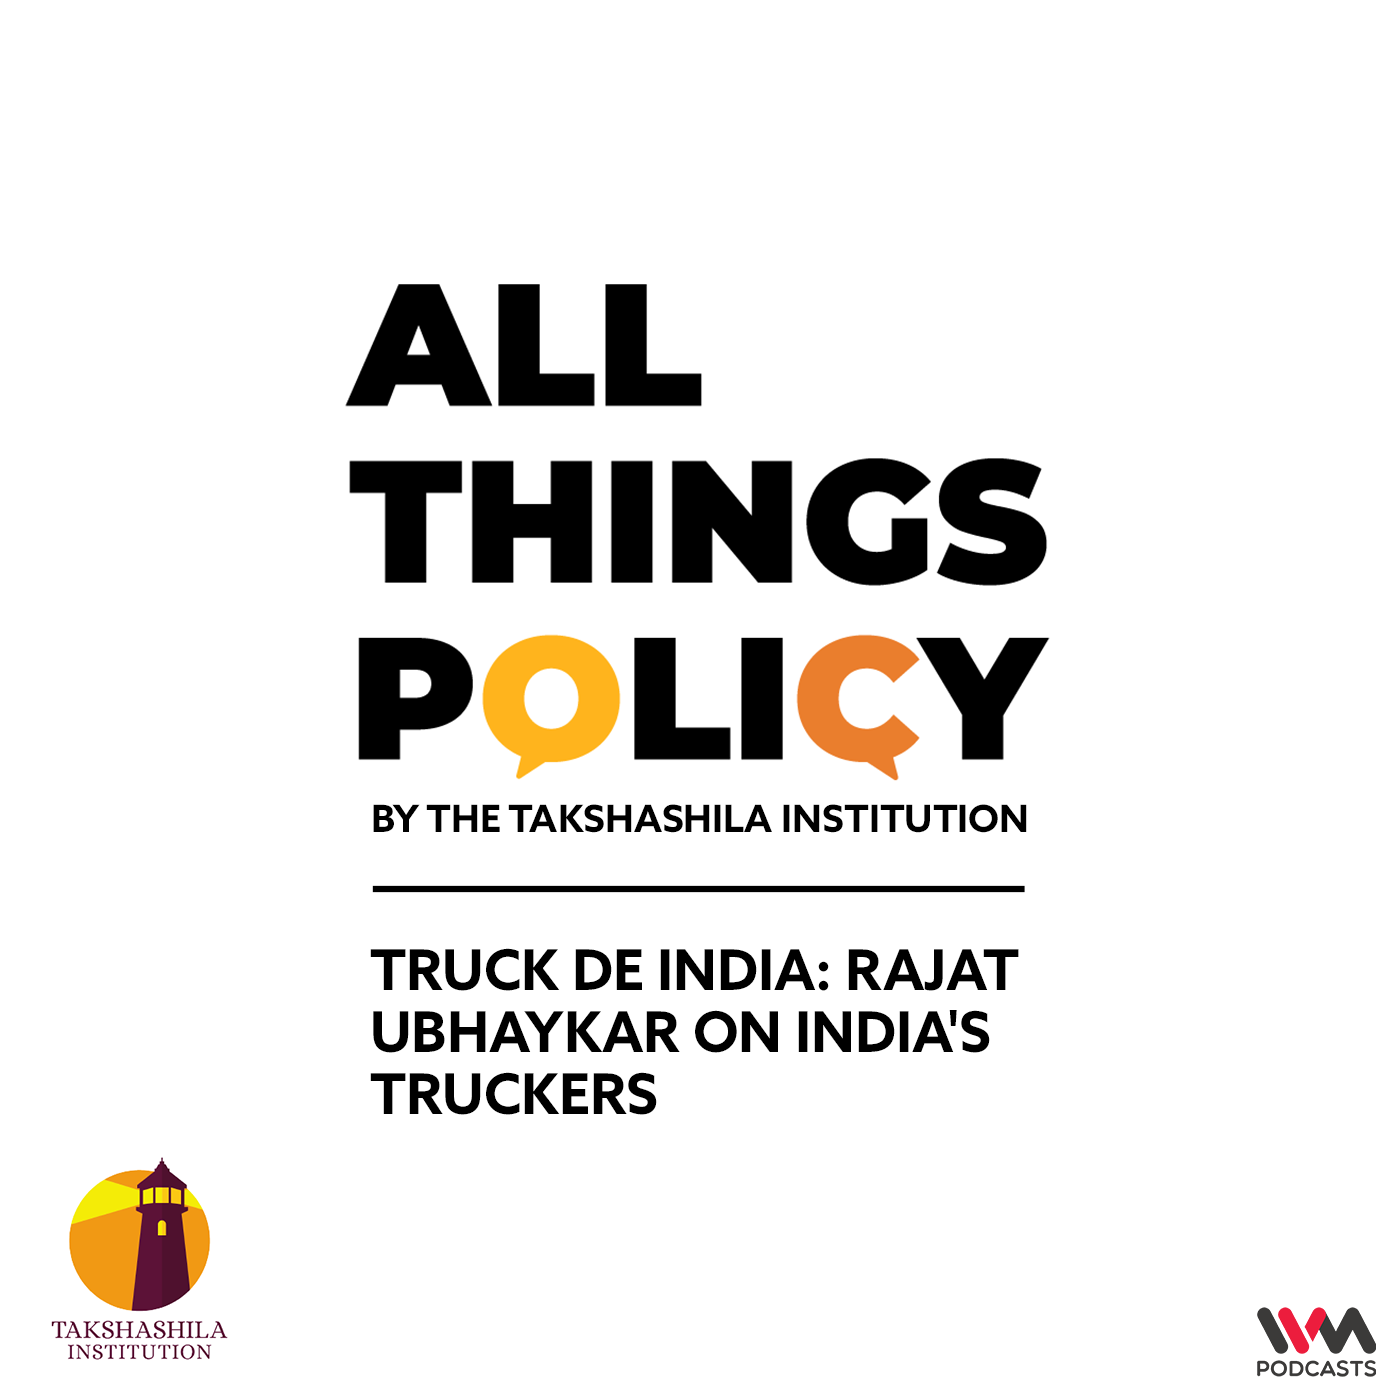 Ep. 573: Truck De India: Rajat Ubhaykar on India's truckers